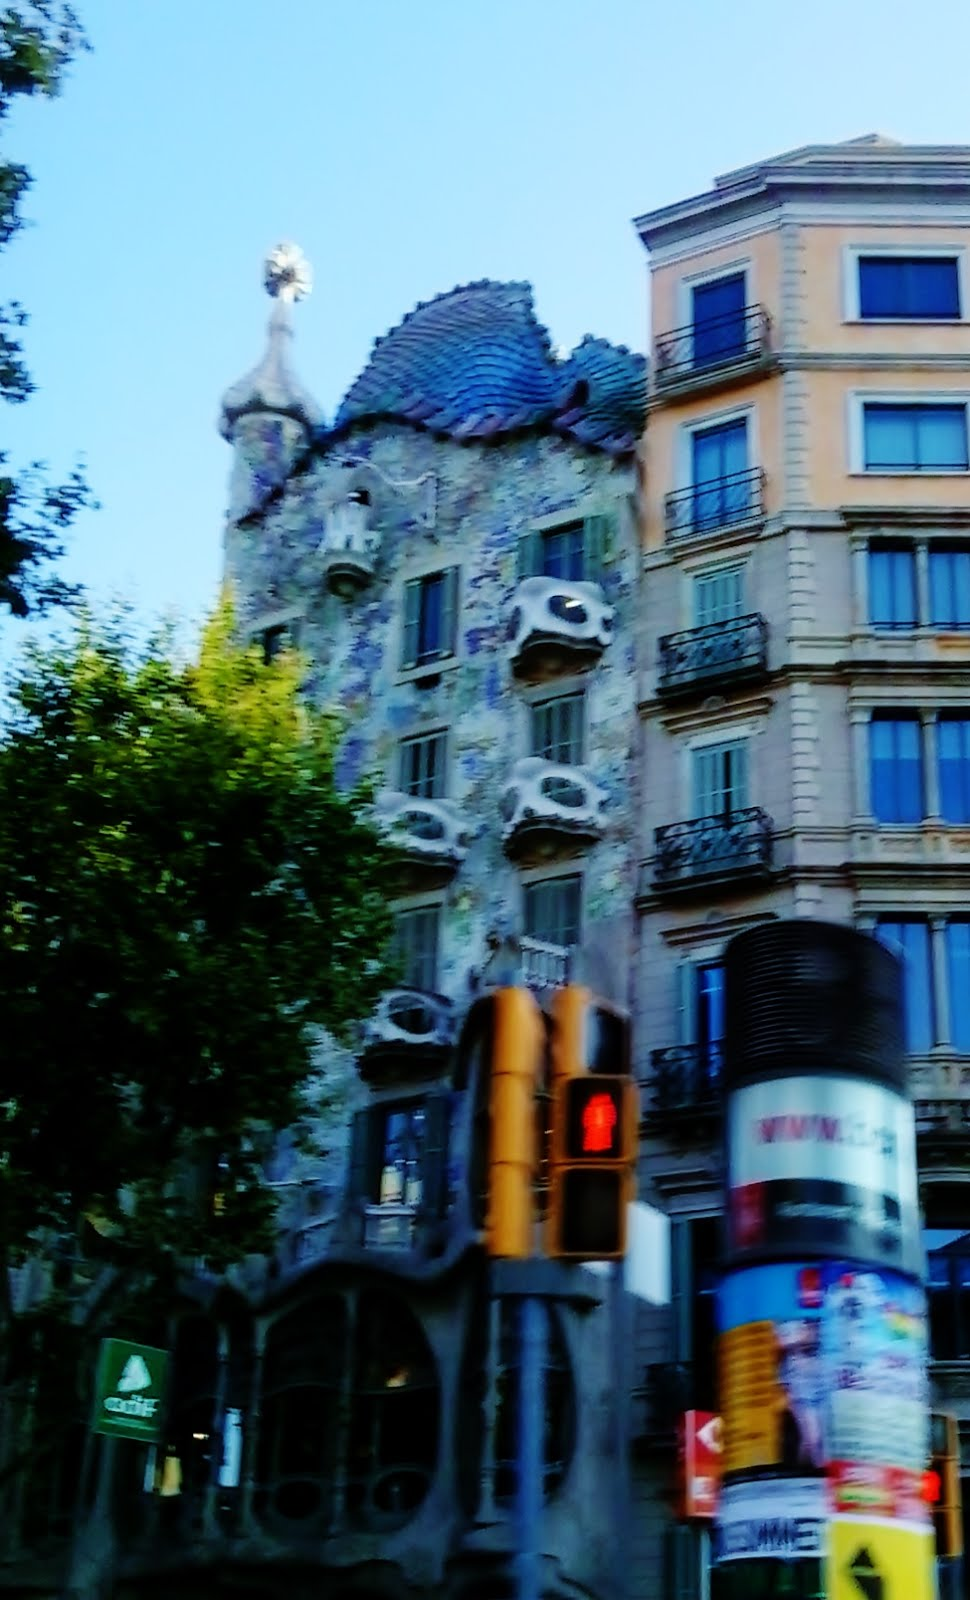 One of Gaudí's famous masterpieces, Casa Batlló, in the shopping boulevard Passeig de Gracia